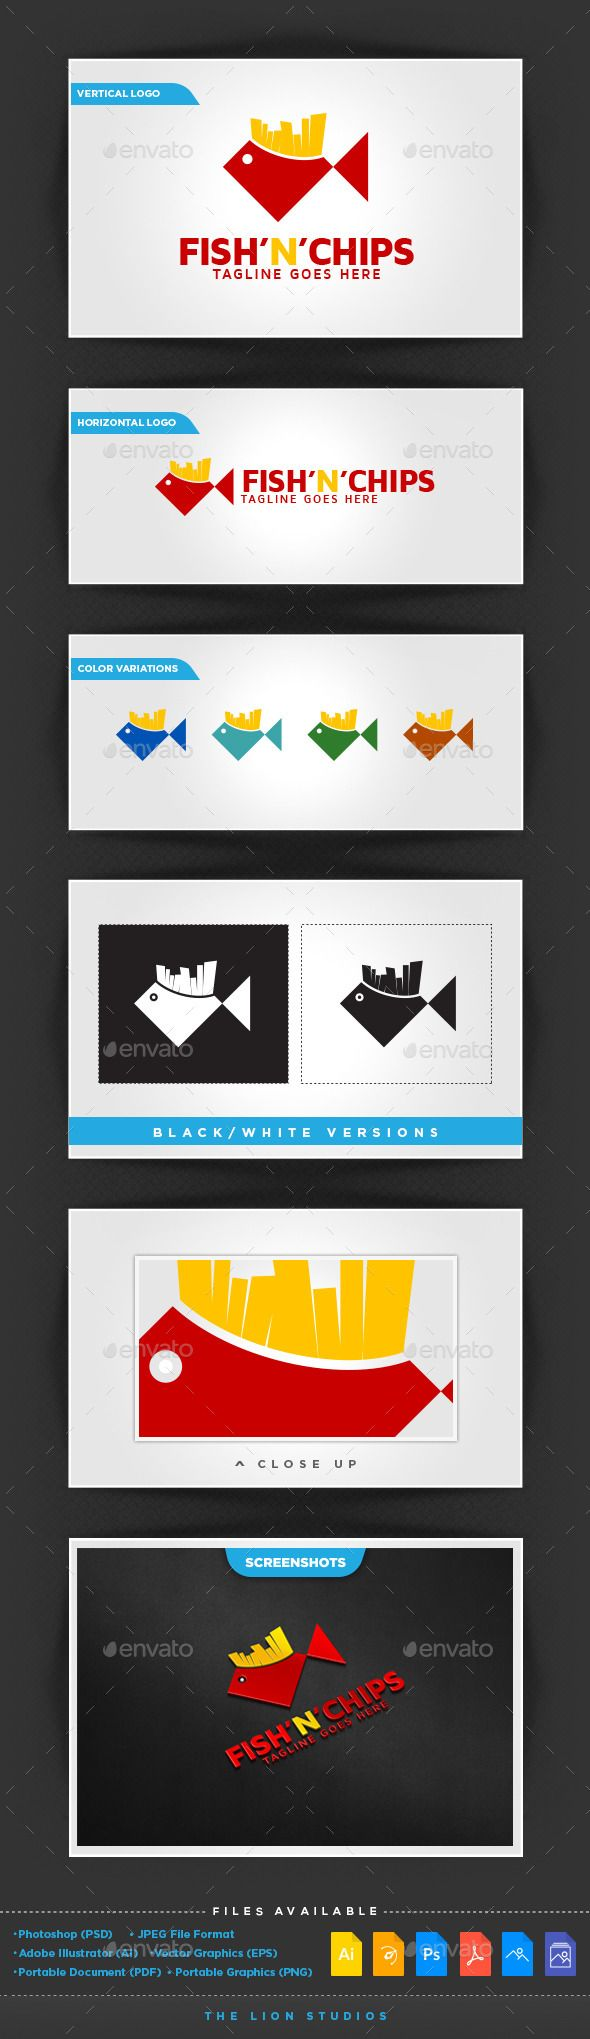 Professional, corporate and modern logo design temple showing Fish and Chips.  This logo design package includes :  ? Vertical, Ho